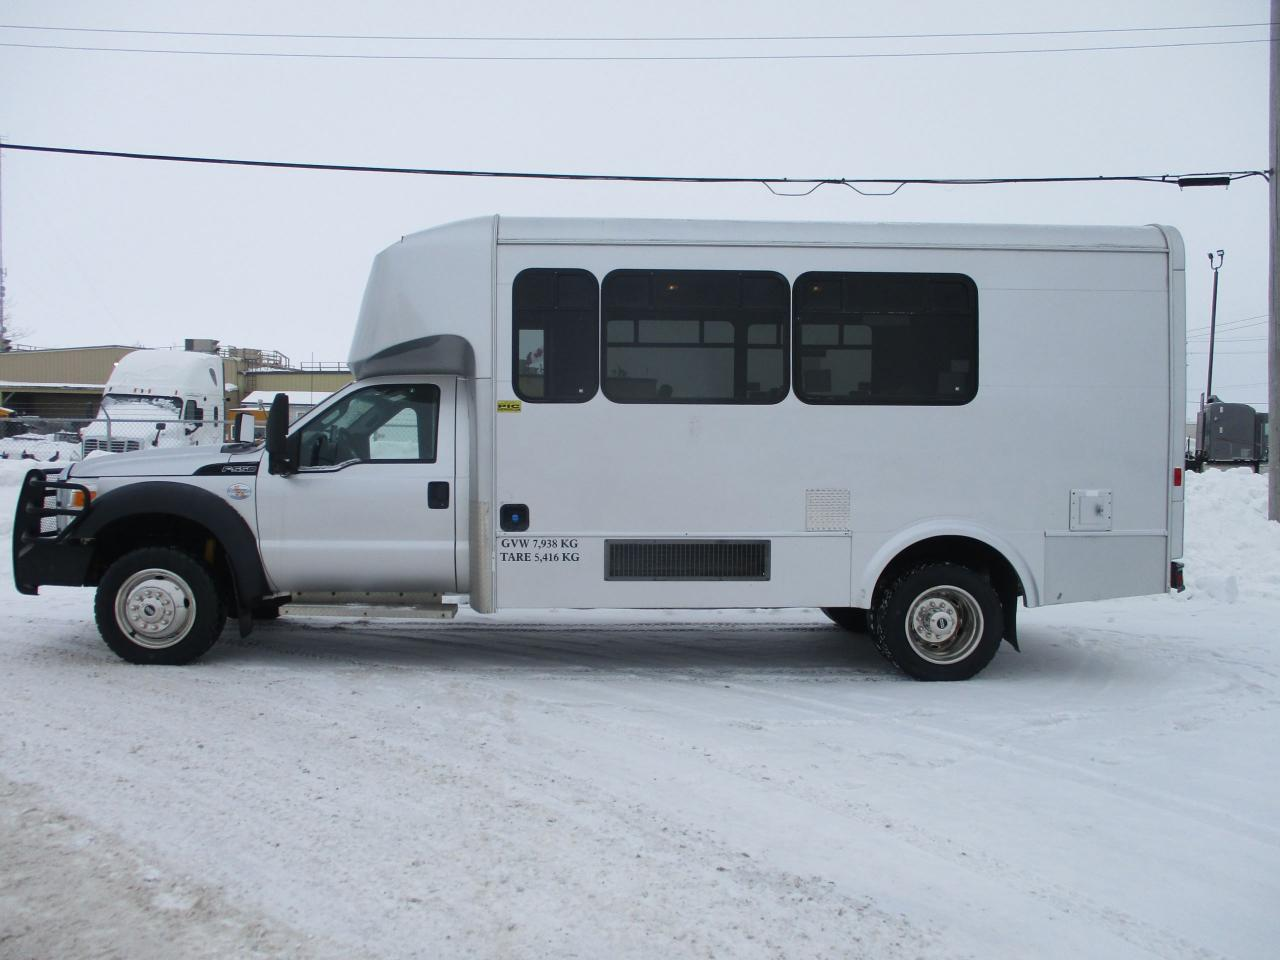 2011 Ford F-550 4x4 pass. bus